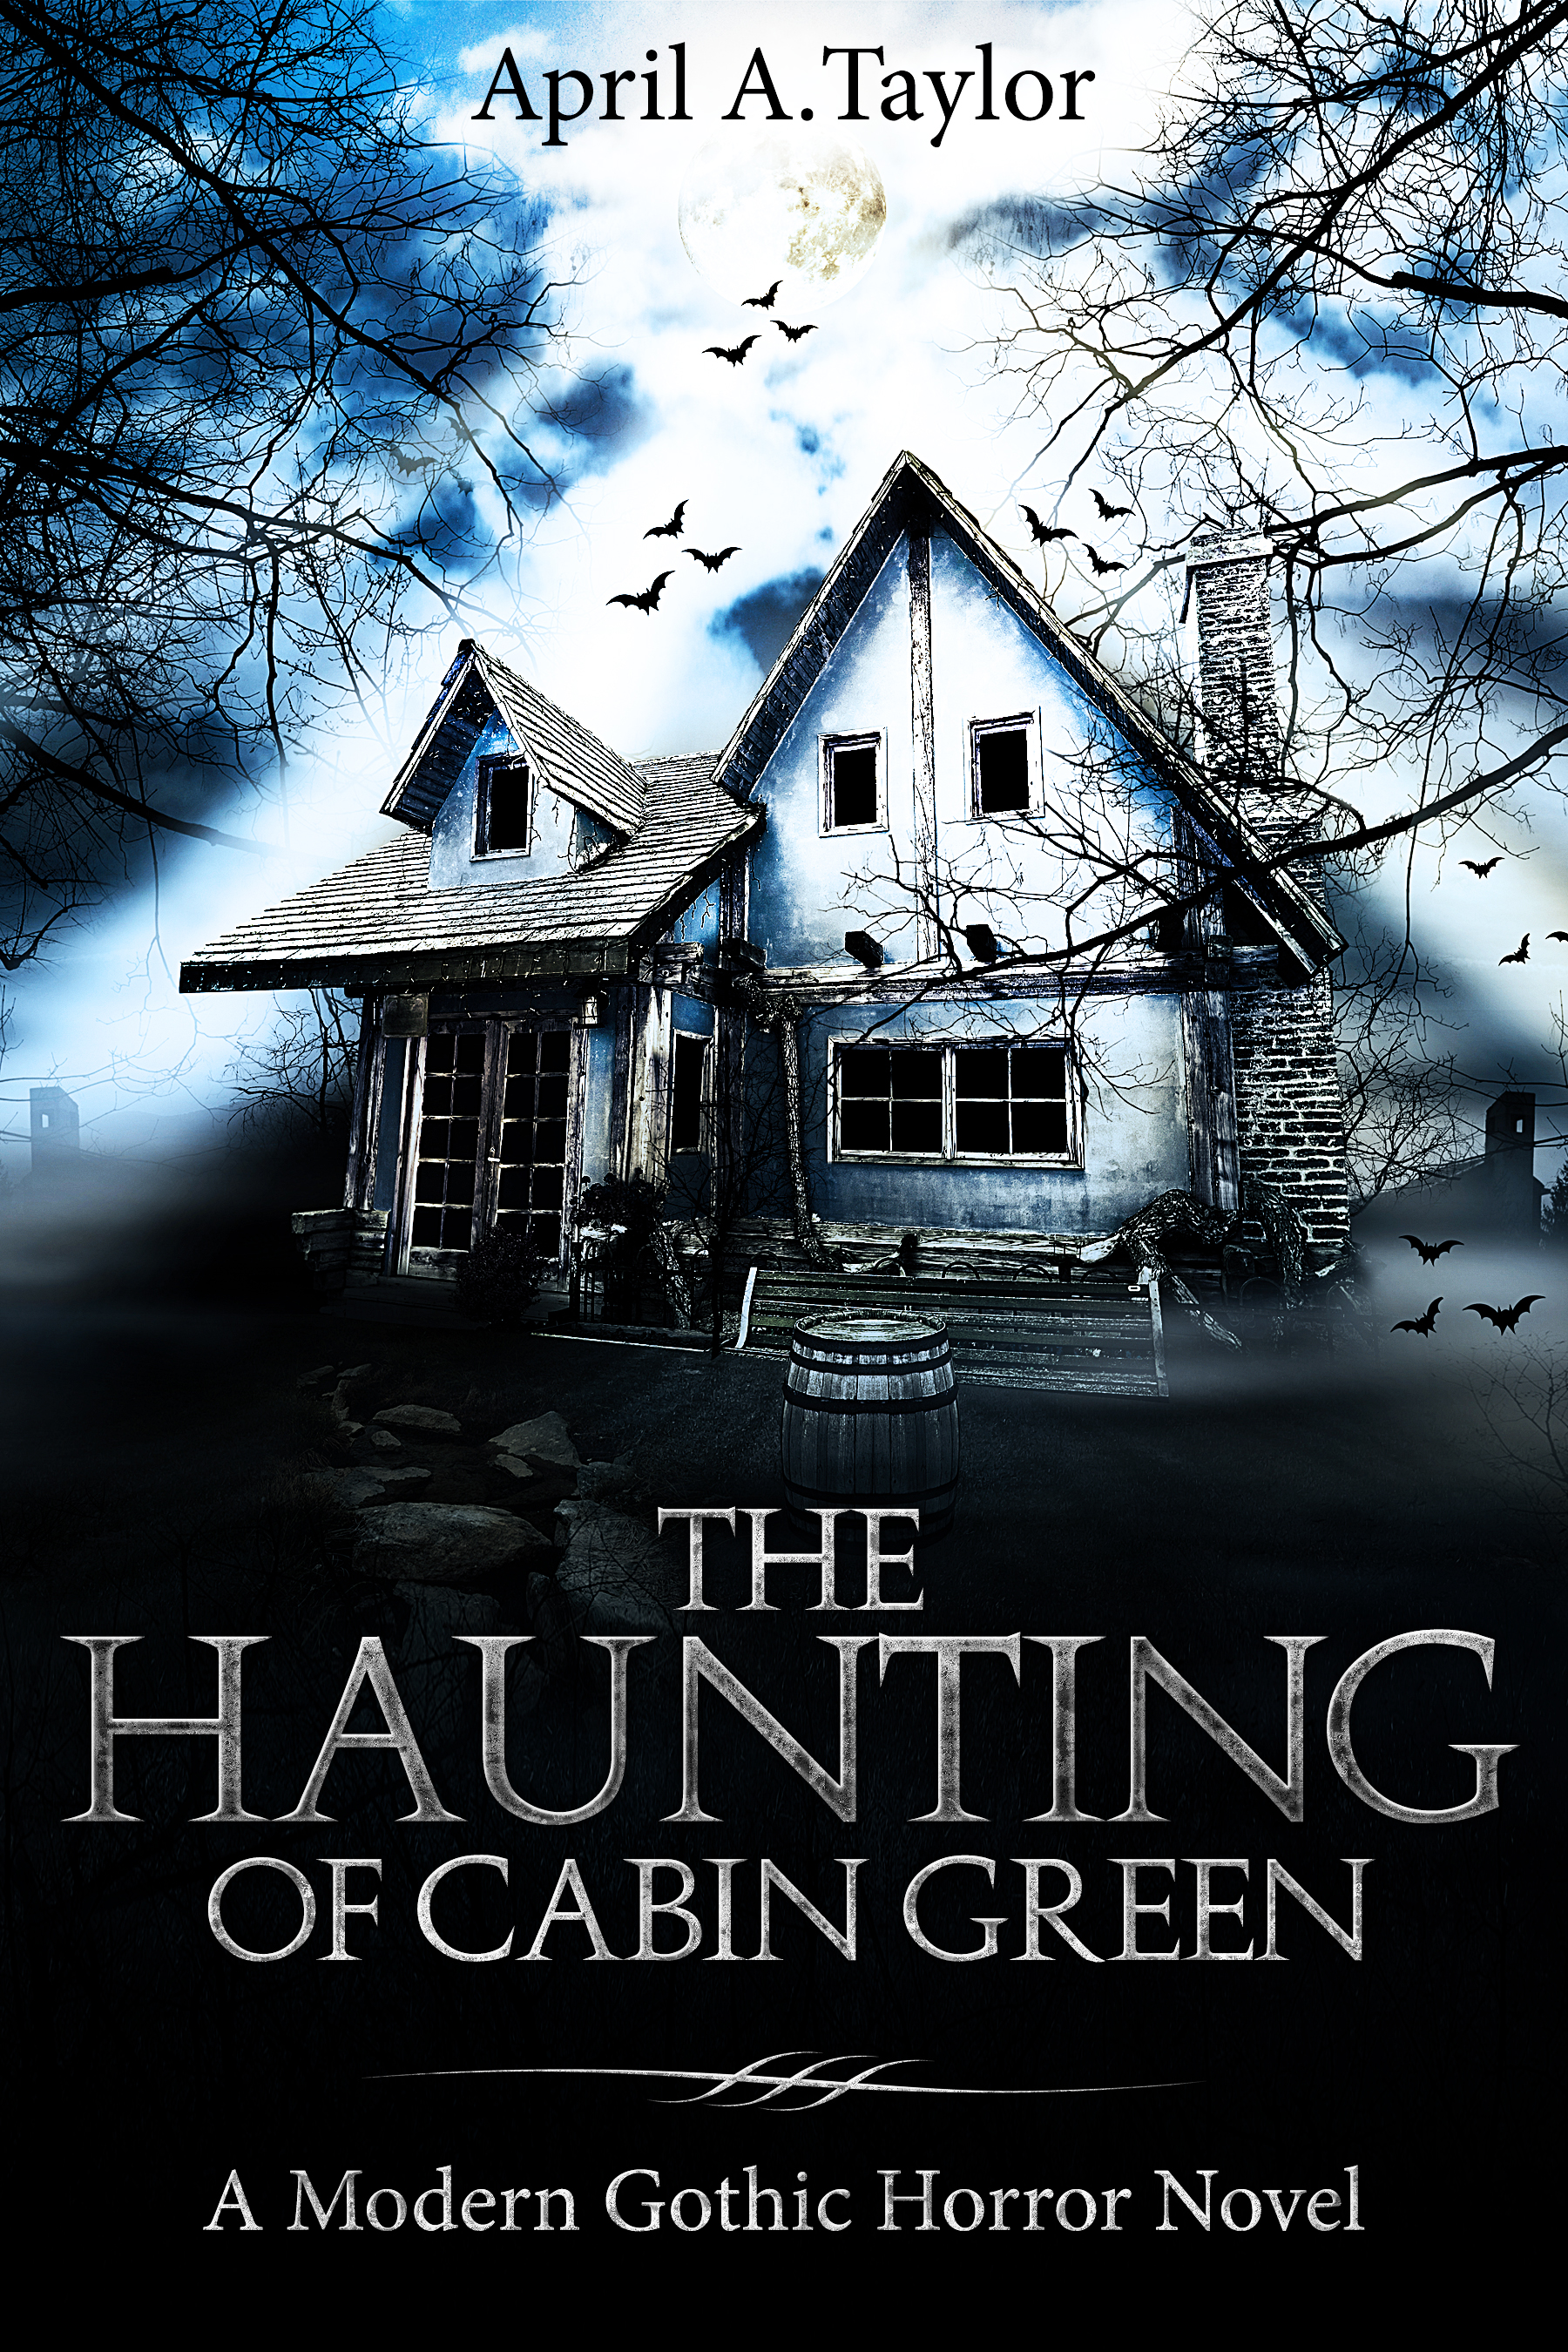 The Haunting of Cabin Green A Modern Gothic Horror Novel Best Horror Books of 2018